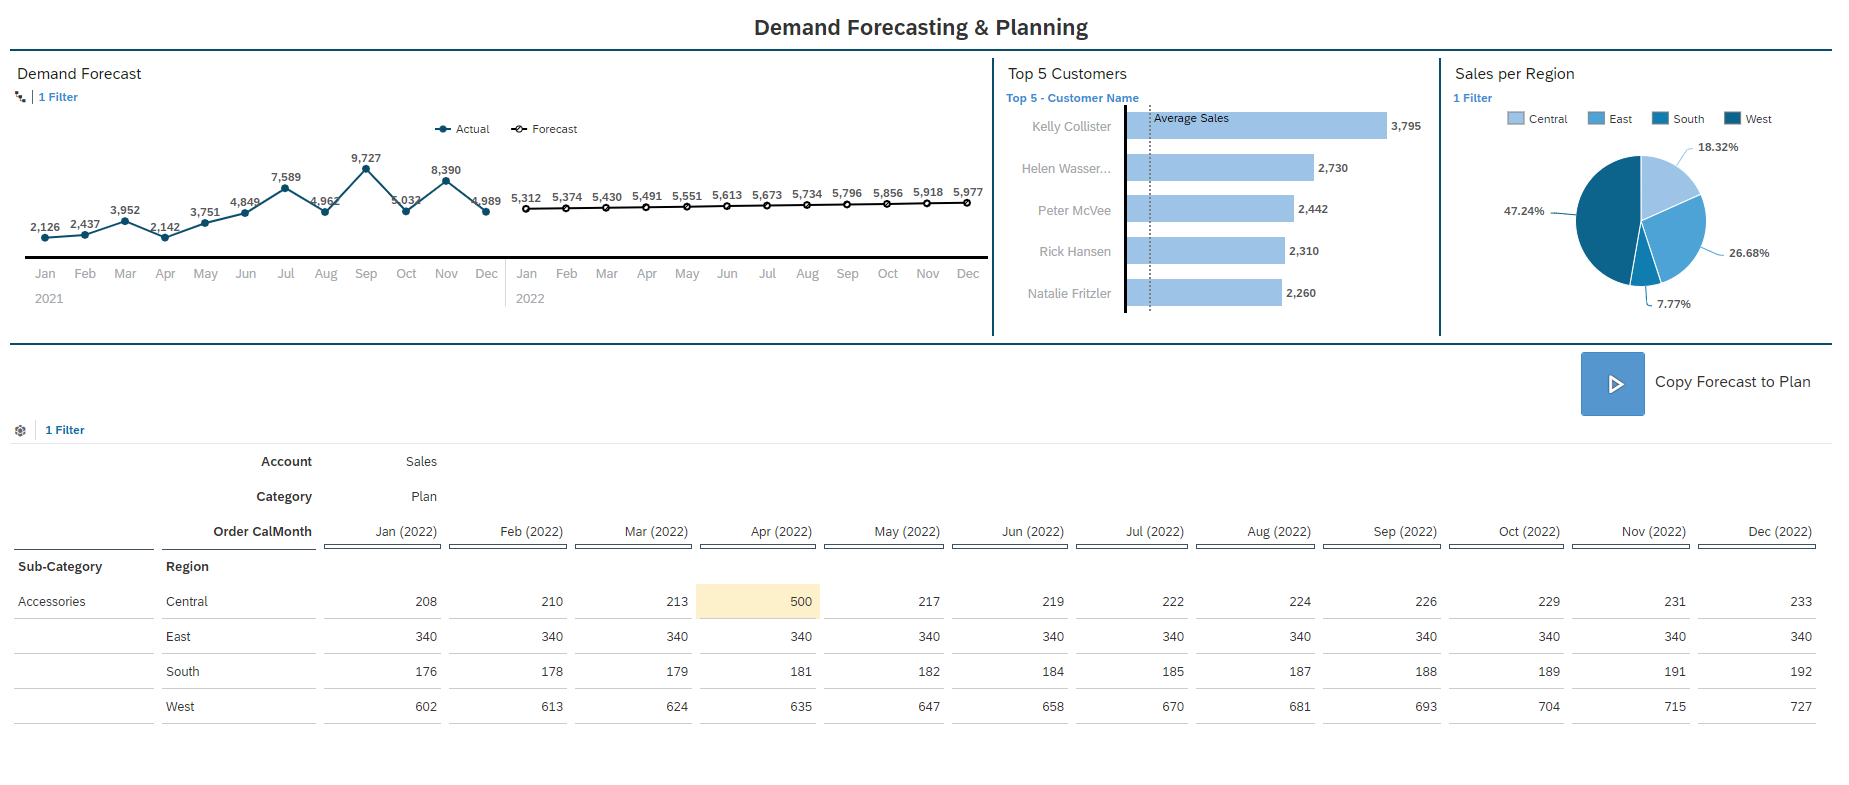 Demand%20Forecasting%20and%20Planning%20Dashboard